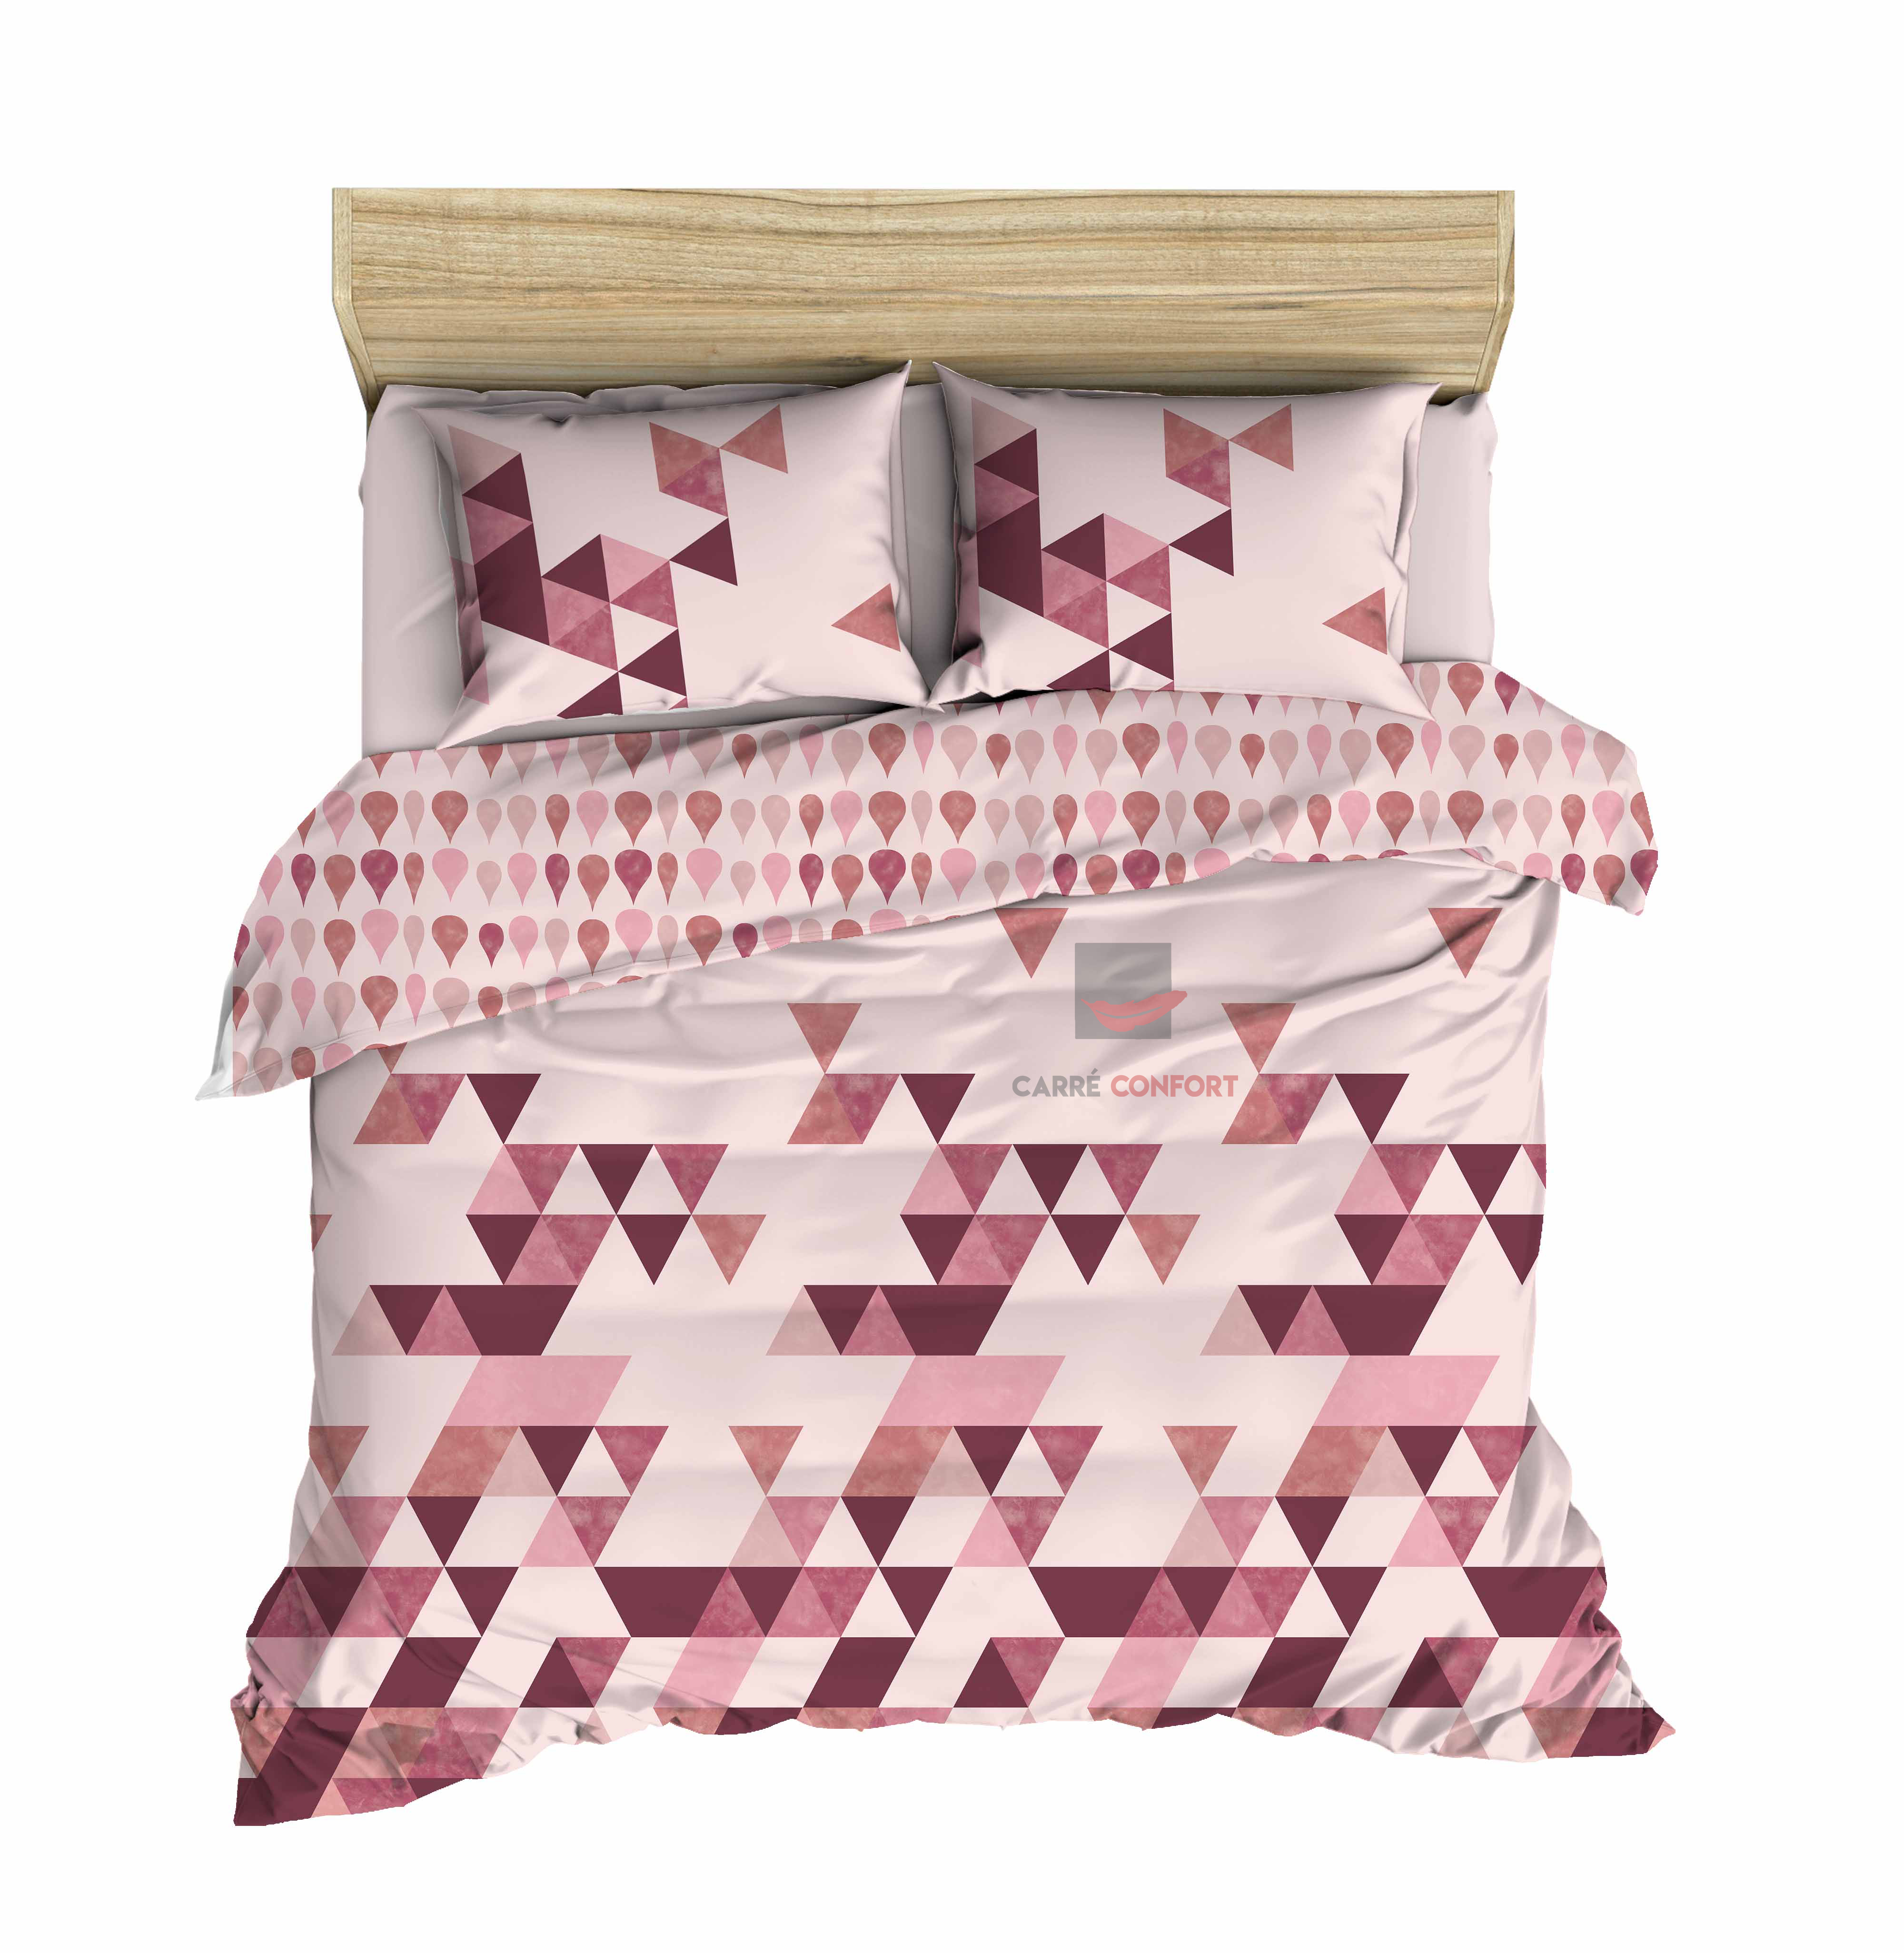 Couette Cotton Doux 2 Place ikat burgundy 240x260